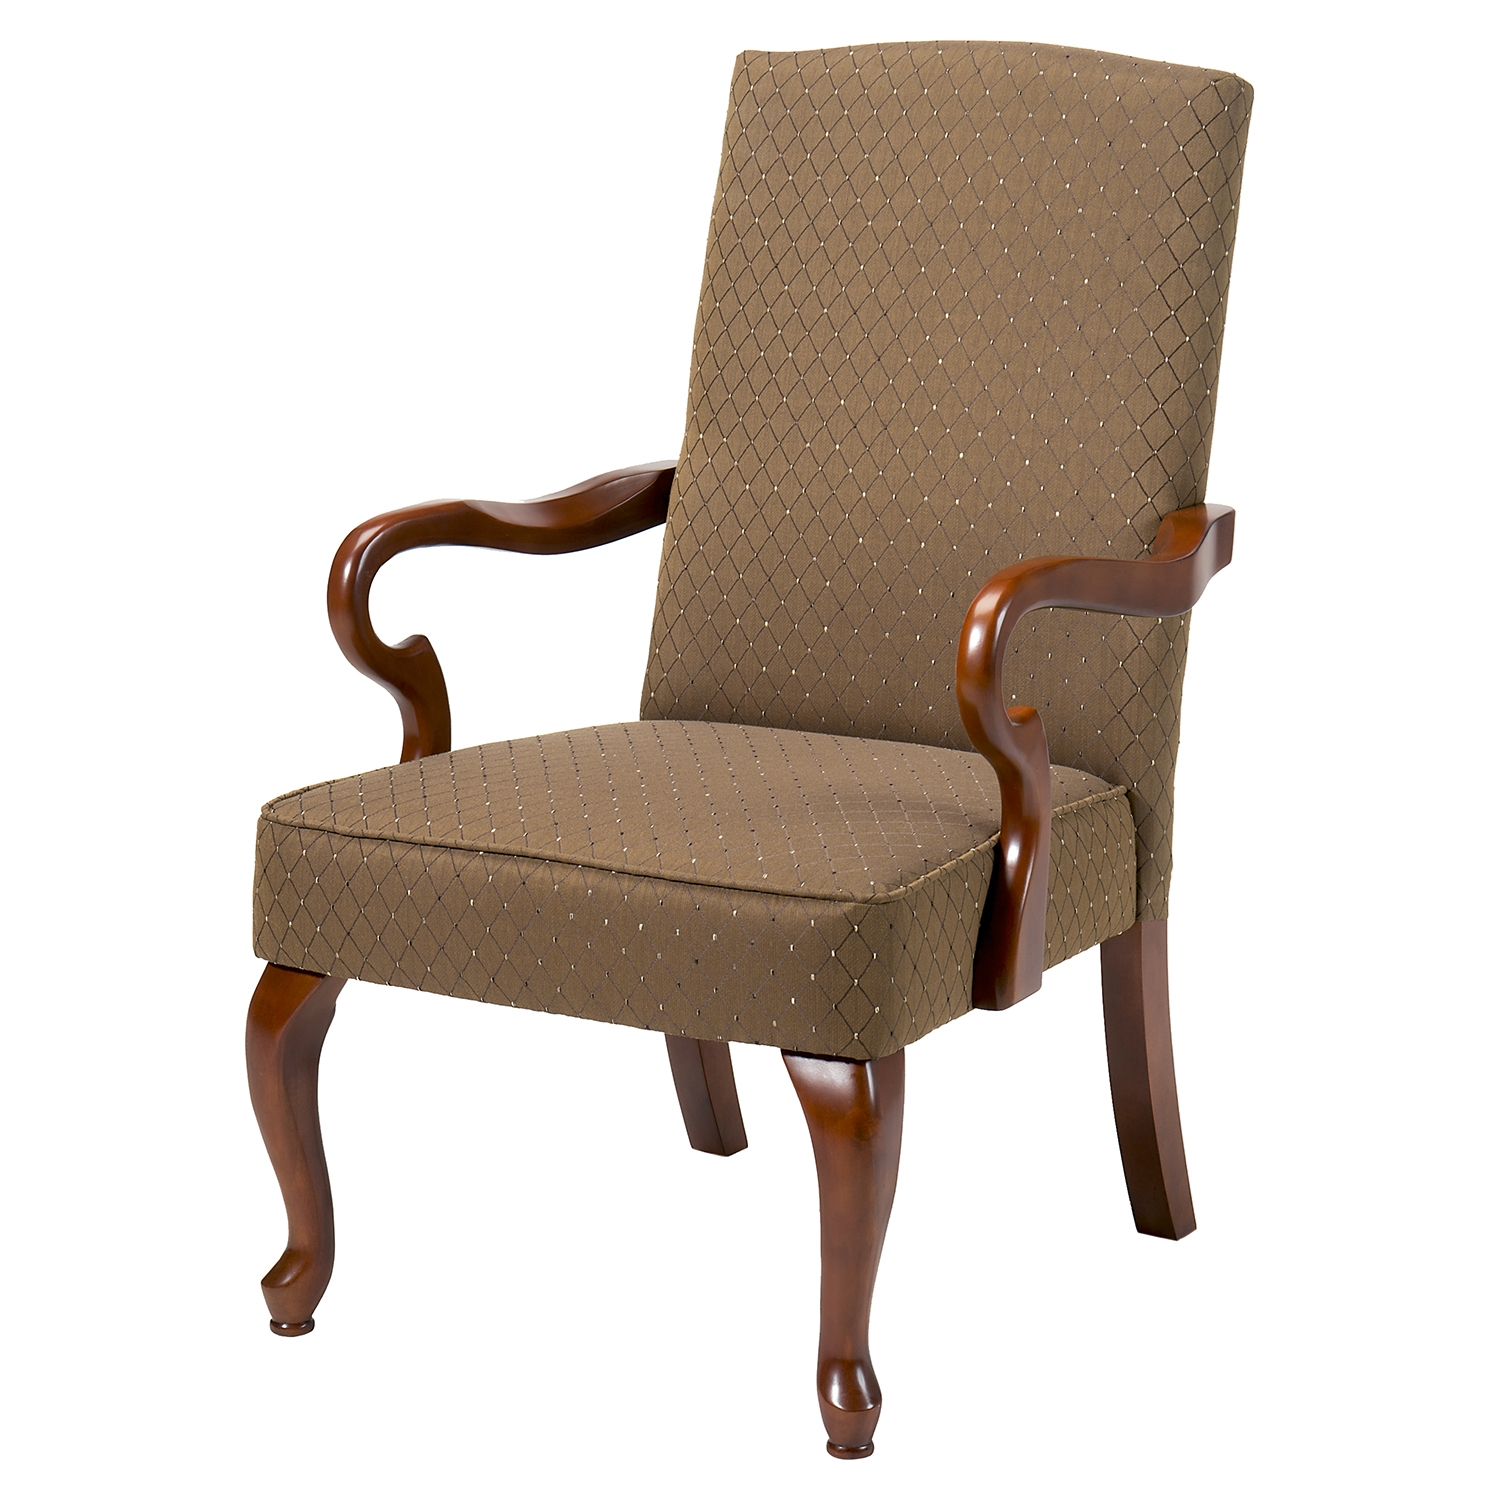 Crystal Gooseneck Arm Chair - Copper